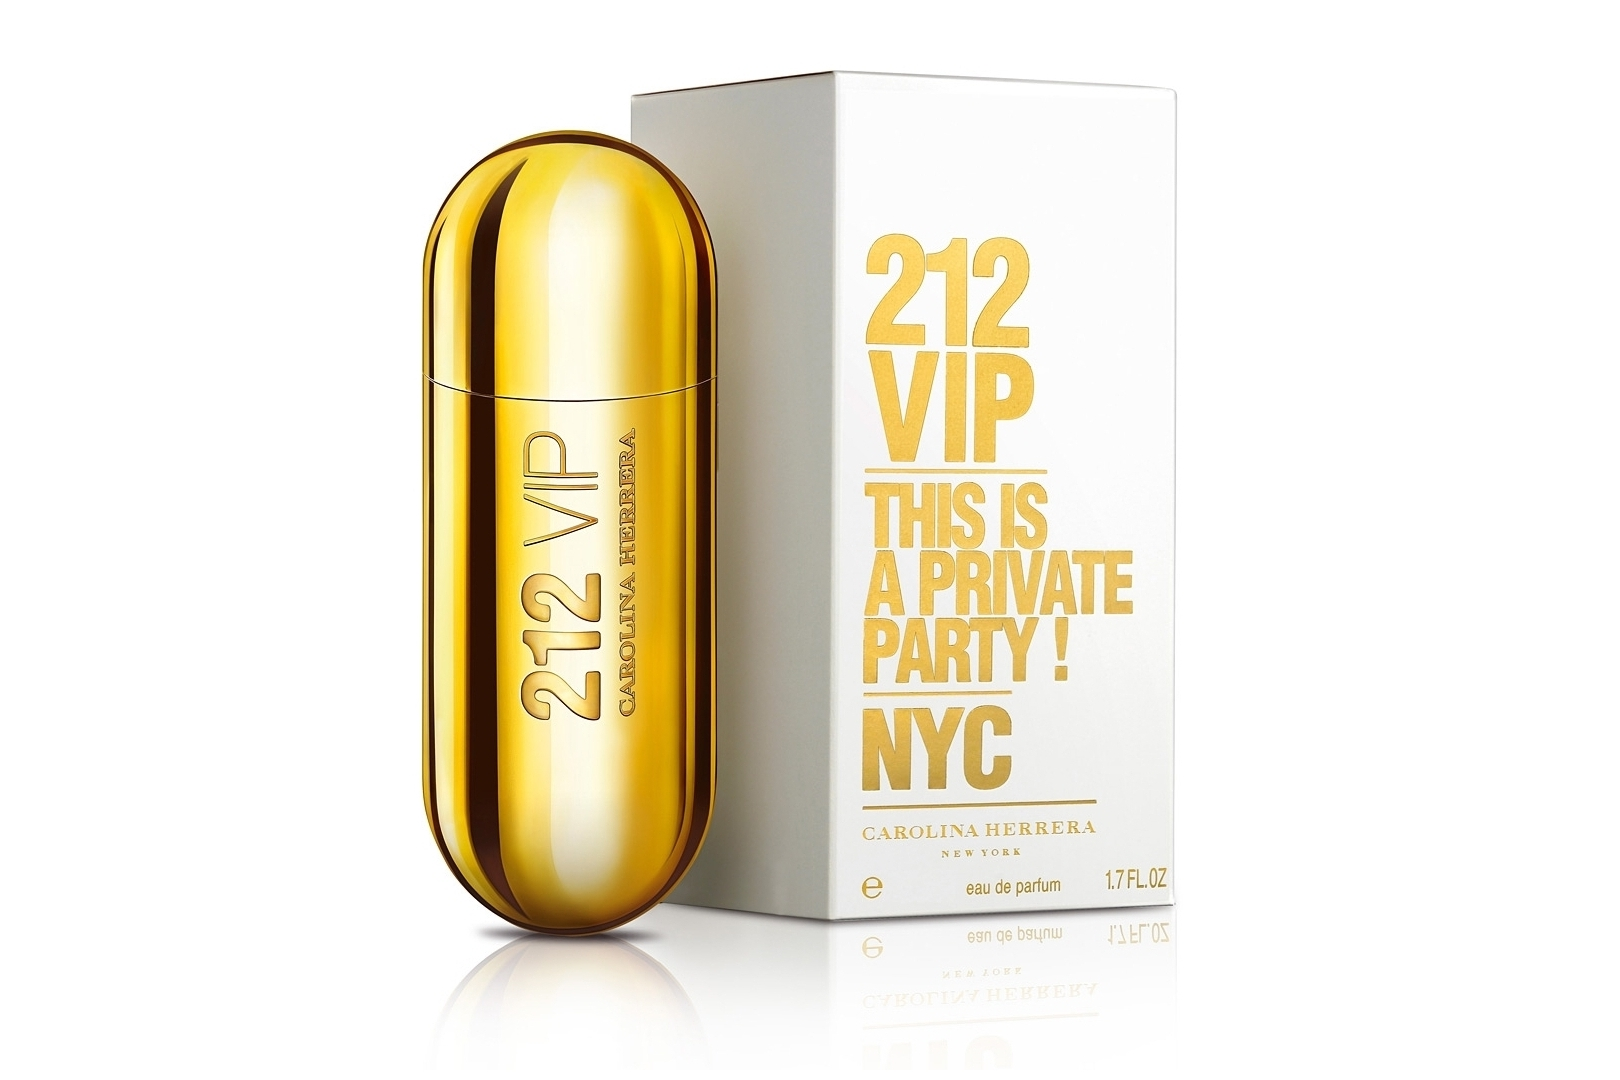 Carolina Herrera 212 VIP, launched in September 2010, is surrounded by slogans such as